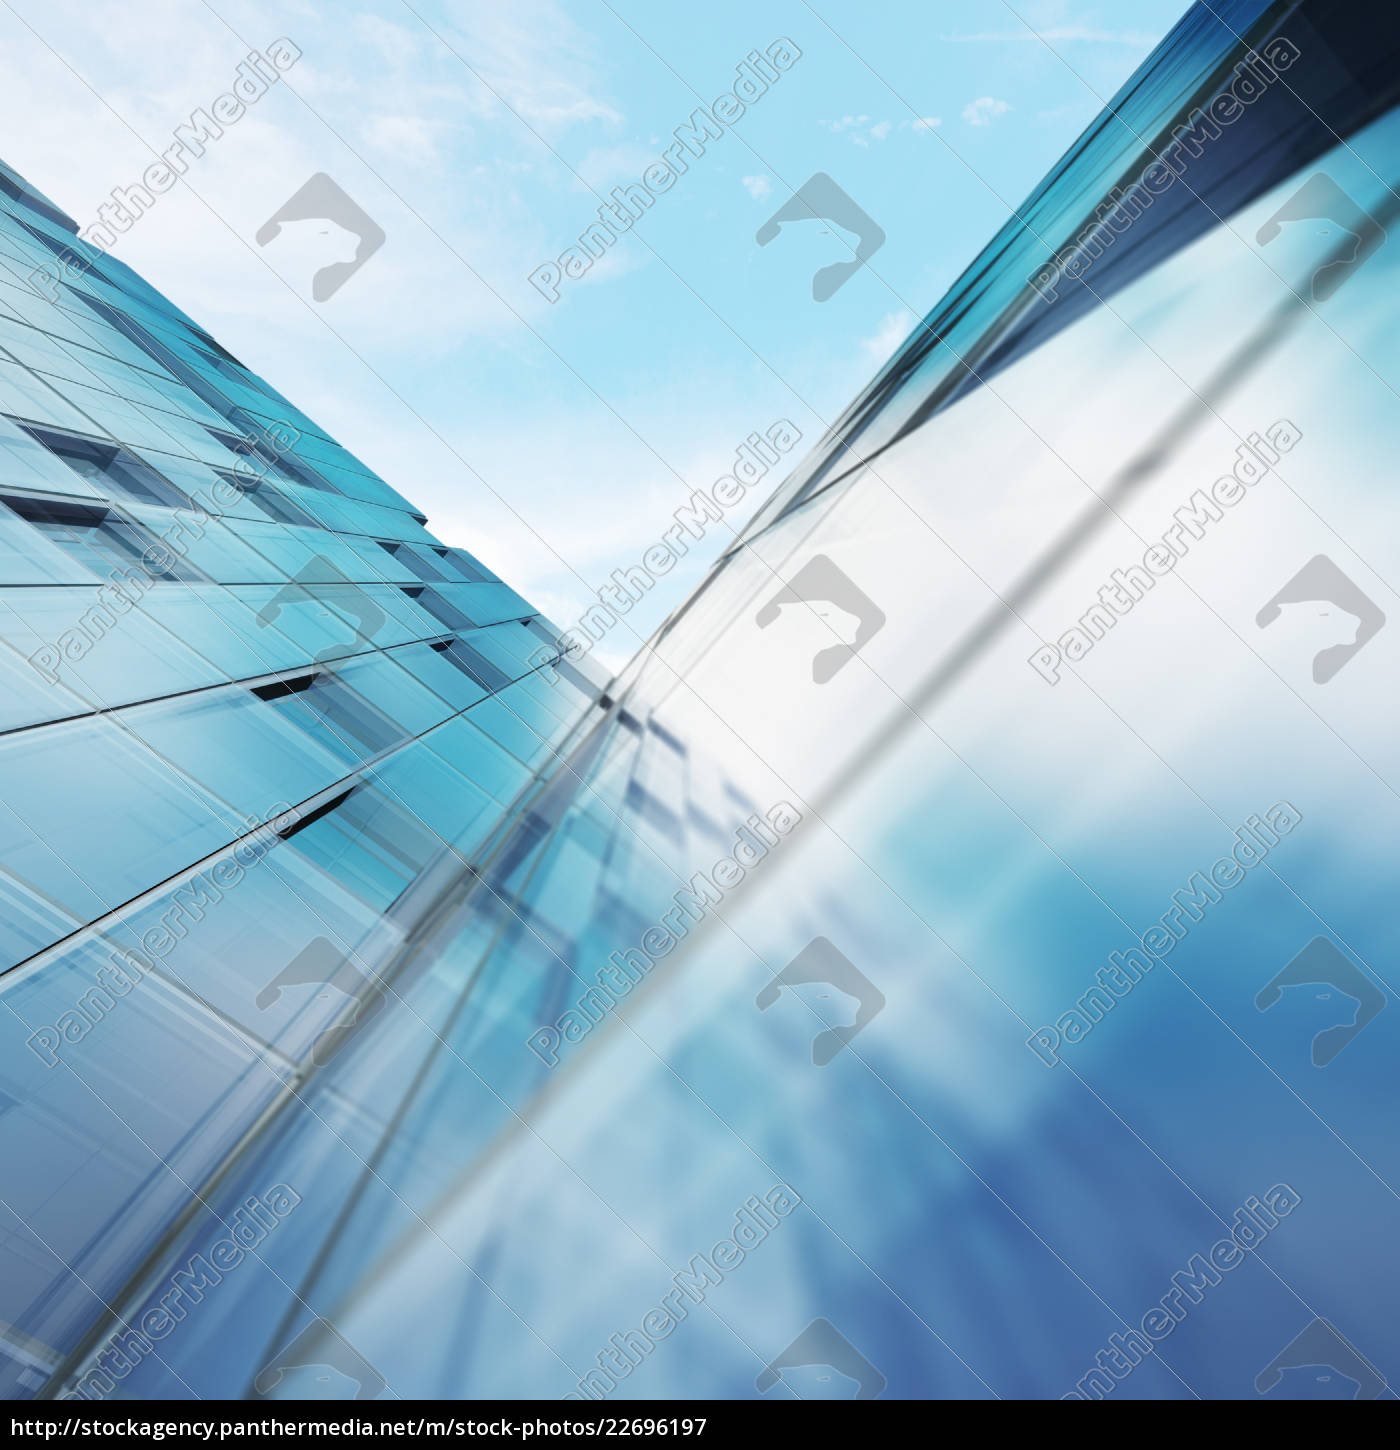 transparent, abstract, building - 22696197